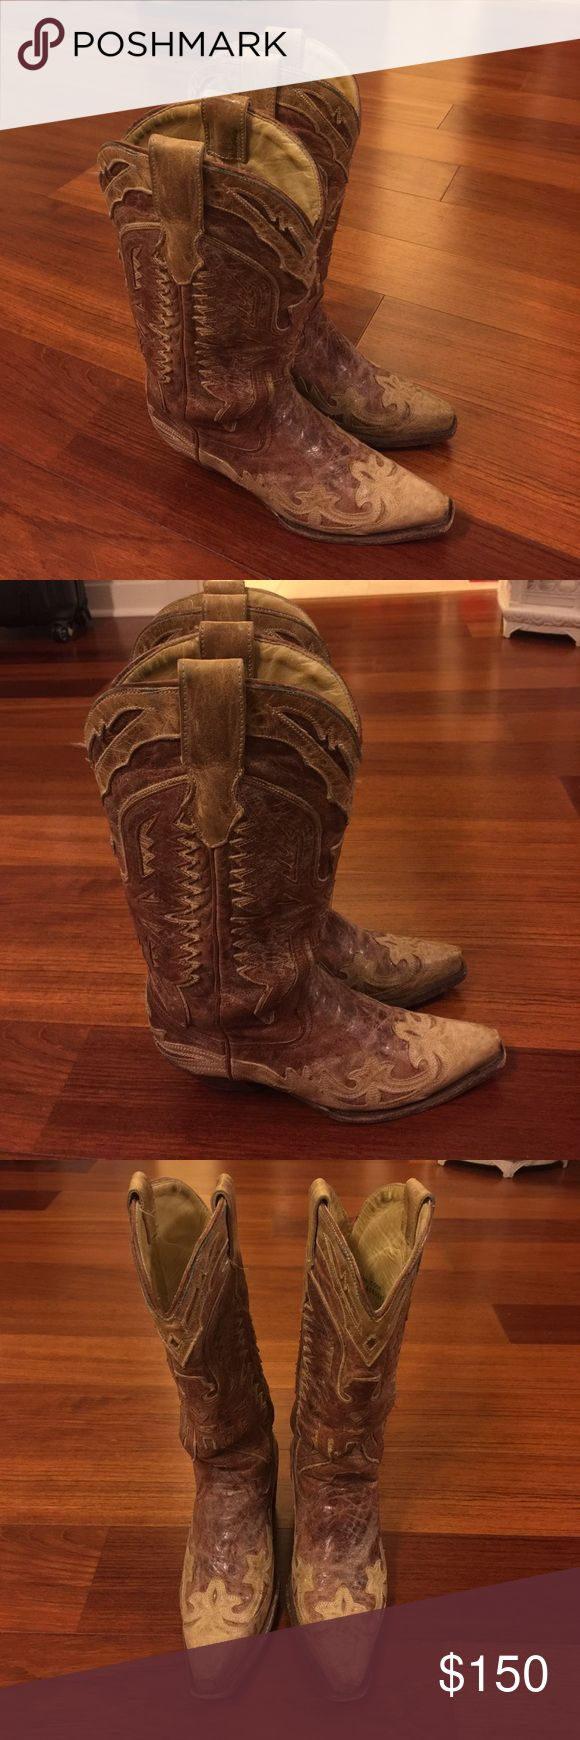 ⚜️Corral sniptoe cowgirl boots Corral sniptoe cowgirl boots size 6-1/2 corral Shoes Heeled Boots